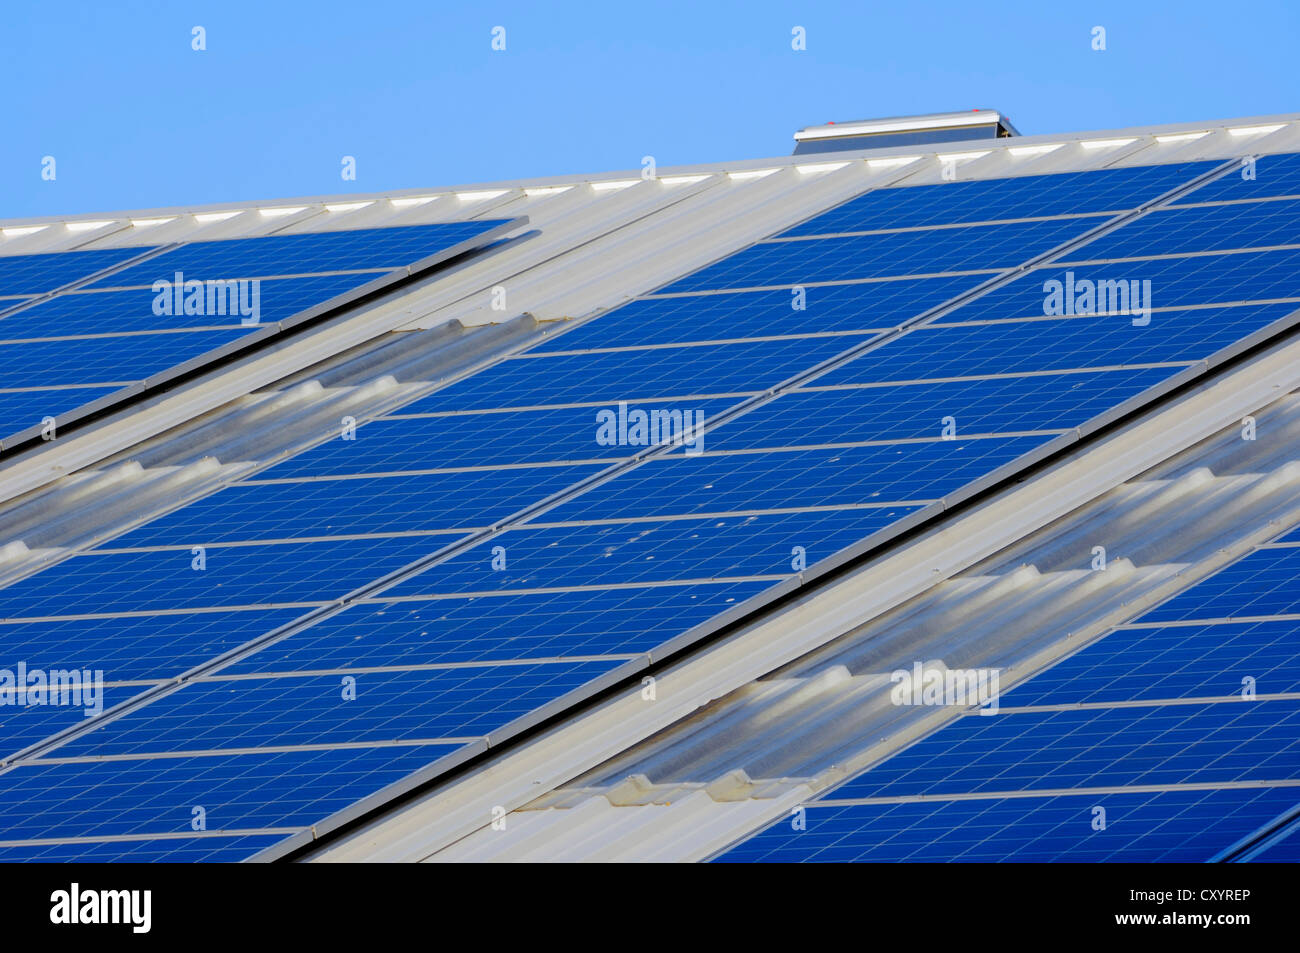 Photovoltaic system, solar cells, solar panels on the roof of a company, North Rhine-Westphalia, PublicGround - Stock Image